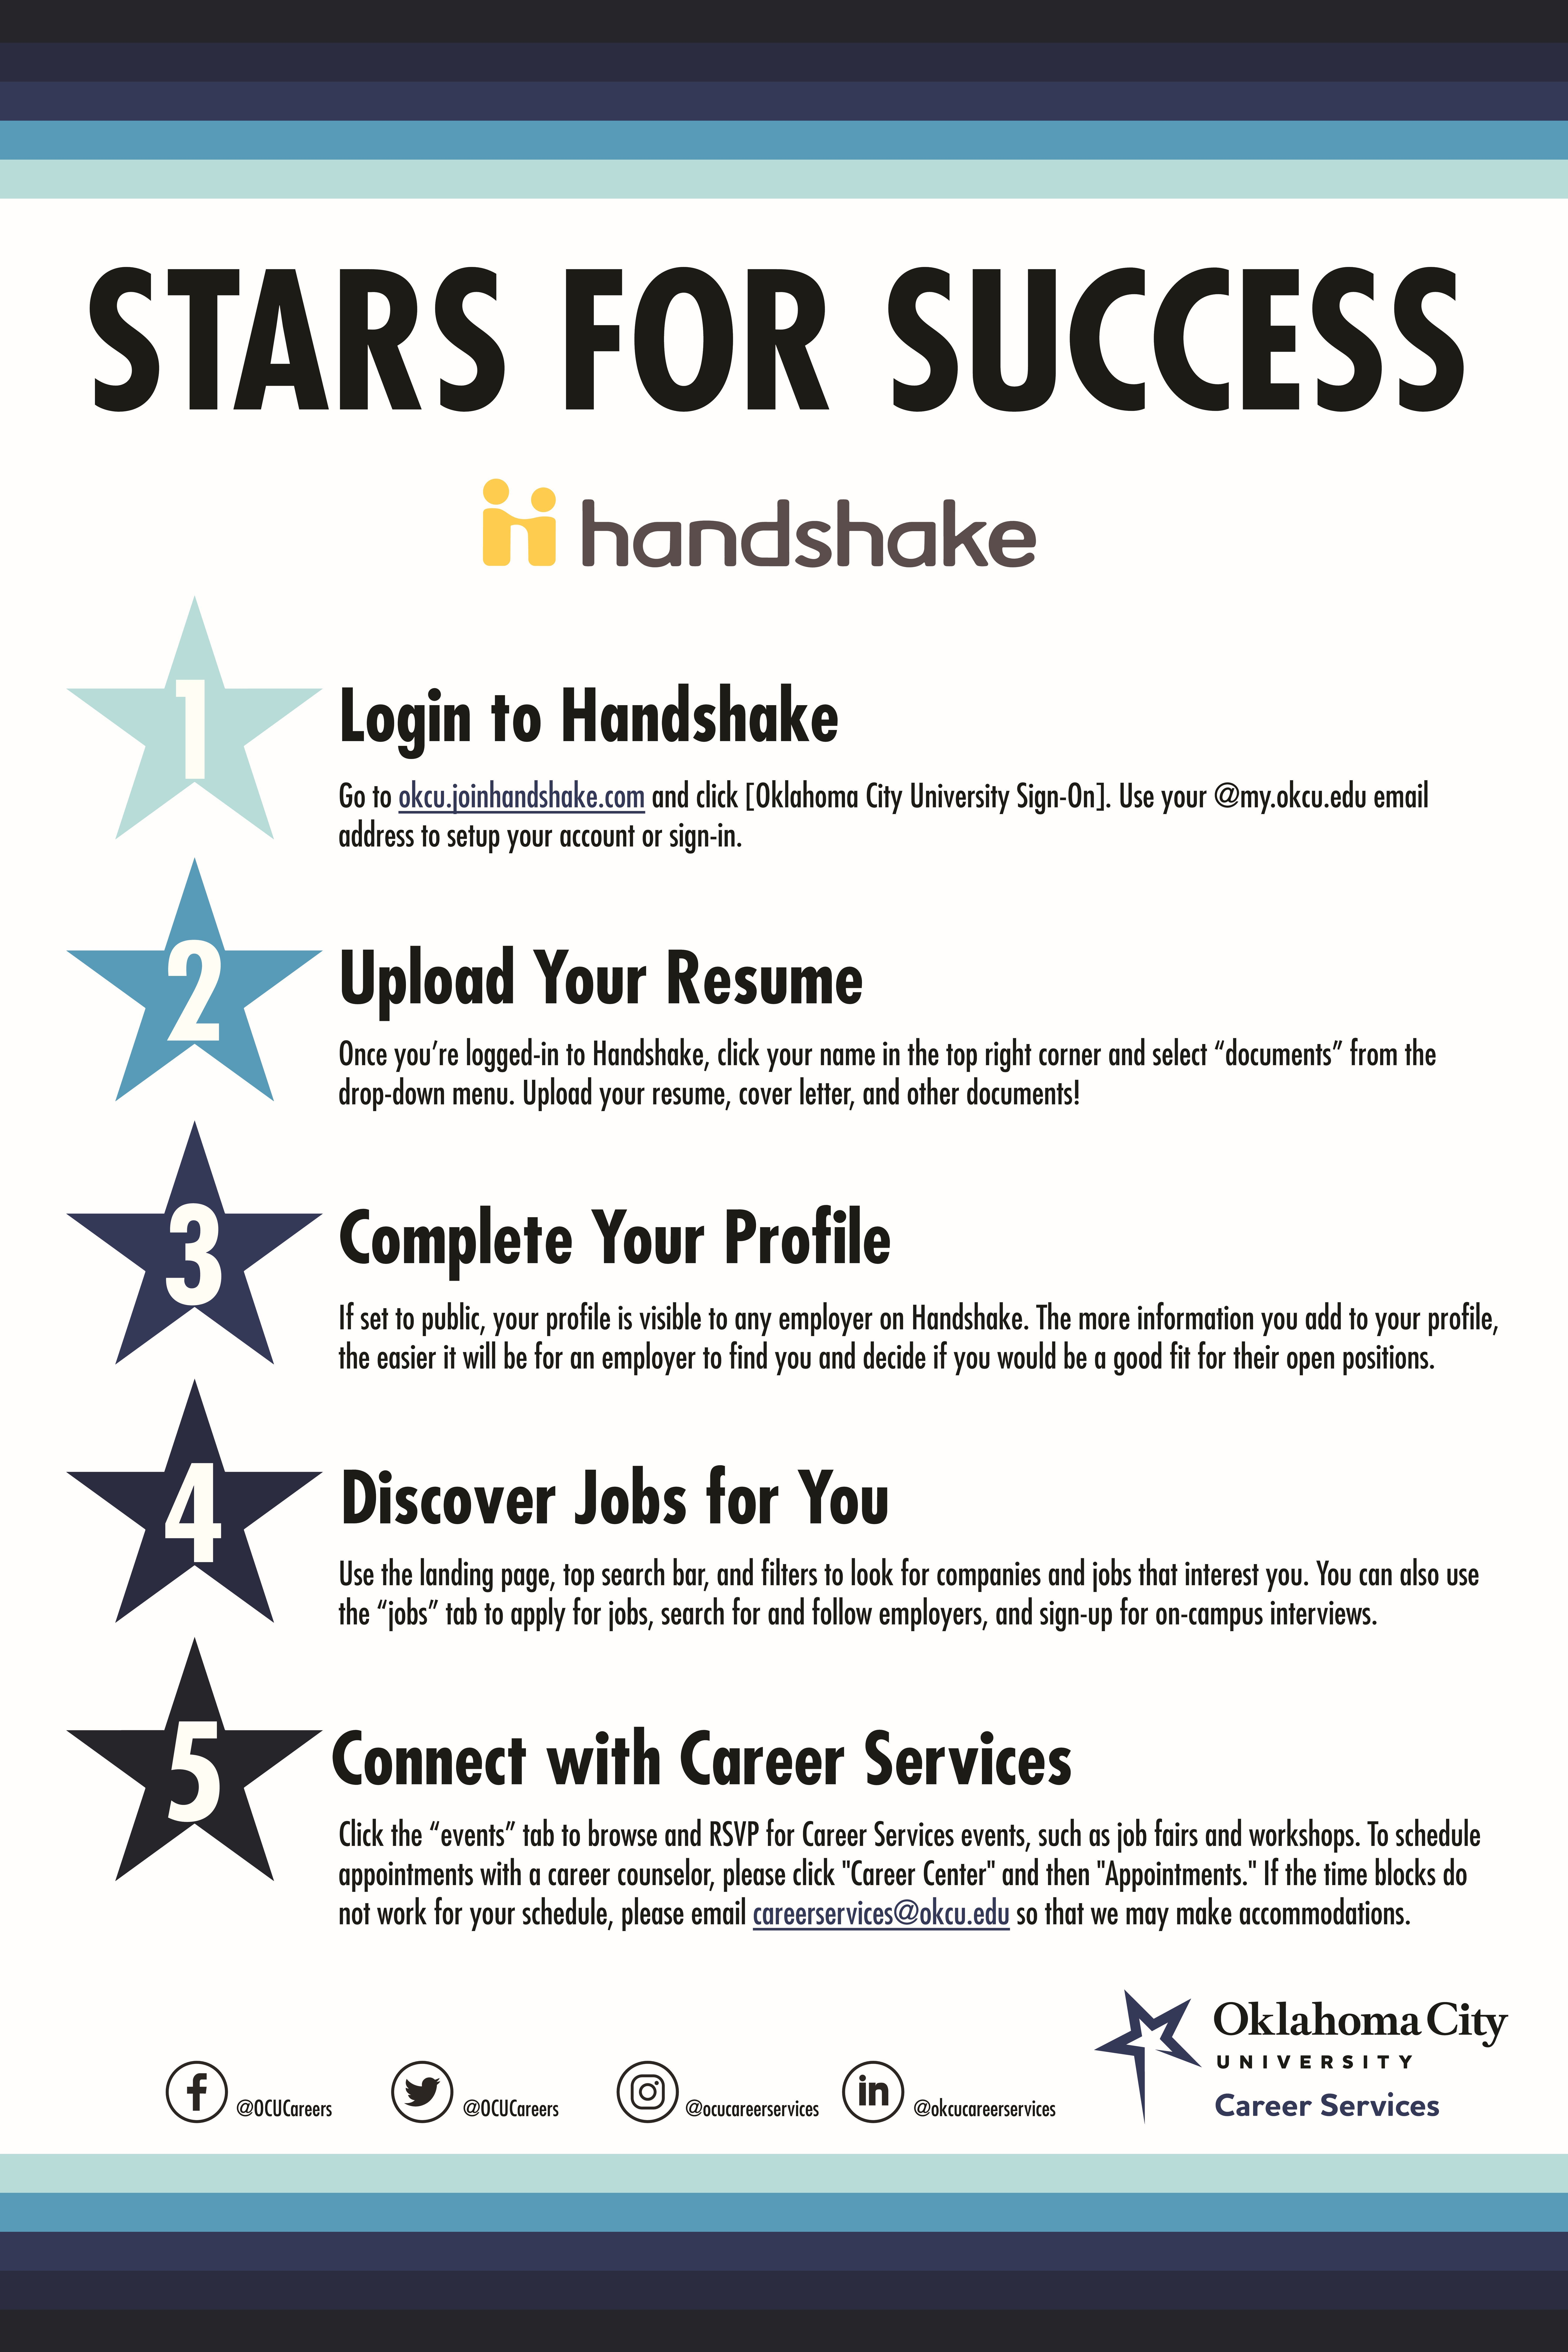 """Stars for Success, Handshake. (1) Login to Handshake. Go to okcu.joinhandshake.com and click Oklahoma City University Sign-on. Use your @my.okcu.edu email address to set up your account or sign in. Upload your resume. Once you're logged into Handshake, click your name in the top right corner and select """"documents"""" from the drop-down menu. Upload your resume, cover letter, and other documents! (3) Complete your profile. If set to public, your profile is visible to any employer on Handshake. The more info you add to your profile, the easier it will be for an employer to find you and decide if you would be a good fit for their open positions. (4) Discover jobs for you. Use the landing page, top search bar, and filters to look for companies and jobs that interest you. You can also use the """"jobs tab to apply for jobs, search for and follow employers, and sign up for on-campus interviews. (5) Connect with Career Services: Click the """"events"""" tab to browse and RSVP for Career Services events, such as job fairs and workshops. To schedule appointments with a career counselor, please click """"Career Center"""" and then """"Appointments."""" If the time blocks do not work for your schedule, please email careerservices@okcu.edu so that we may make accommodations."""